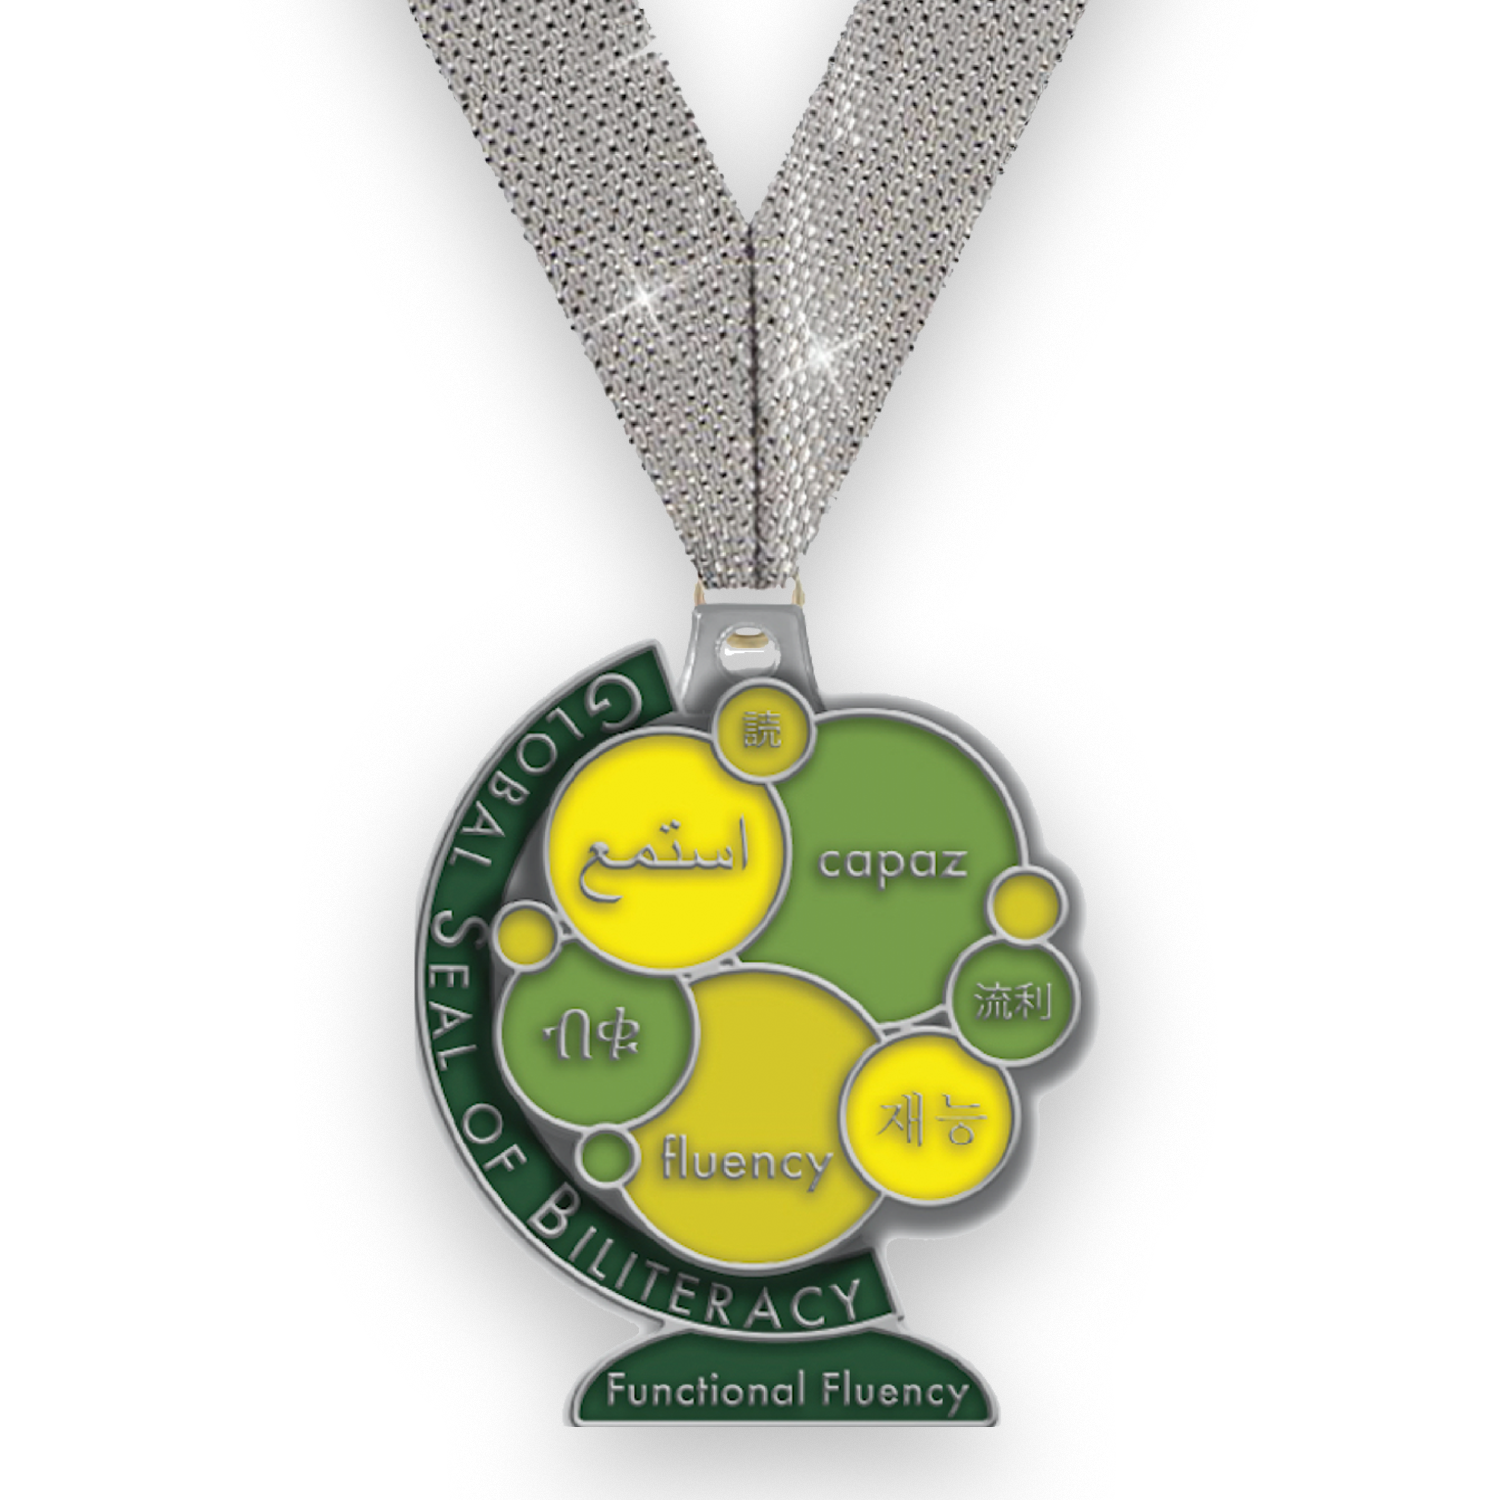 Add some excitement to your Global Seal of Biliteracy award presentations. These high-quality, die-cast enameled medals are available to serve as a unique recognition for anyone who qualified for the Global Seal of Biliteracy with Functional Fluency. They can be given together with our FREE Global Seal of Biliteracy certificate at a special recognition event and worn at graduation ceremonies to further honor your students.  The Functional Fluency medal has a width of 1.75 inches, a length of 2 inches and comes with a silver neck strap.    *Medals can only be ordered for qualifying Global Seal certificate awardees and in the same quantities. After awardees have been processed you will receive a link to purchase.